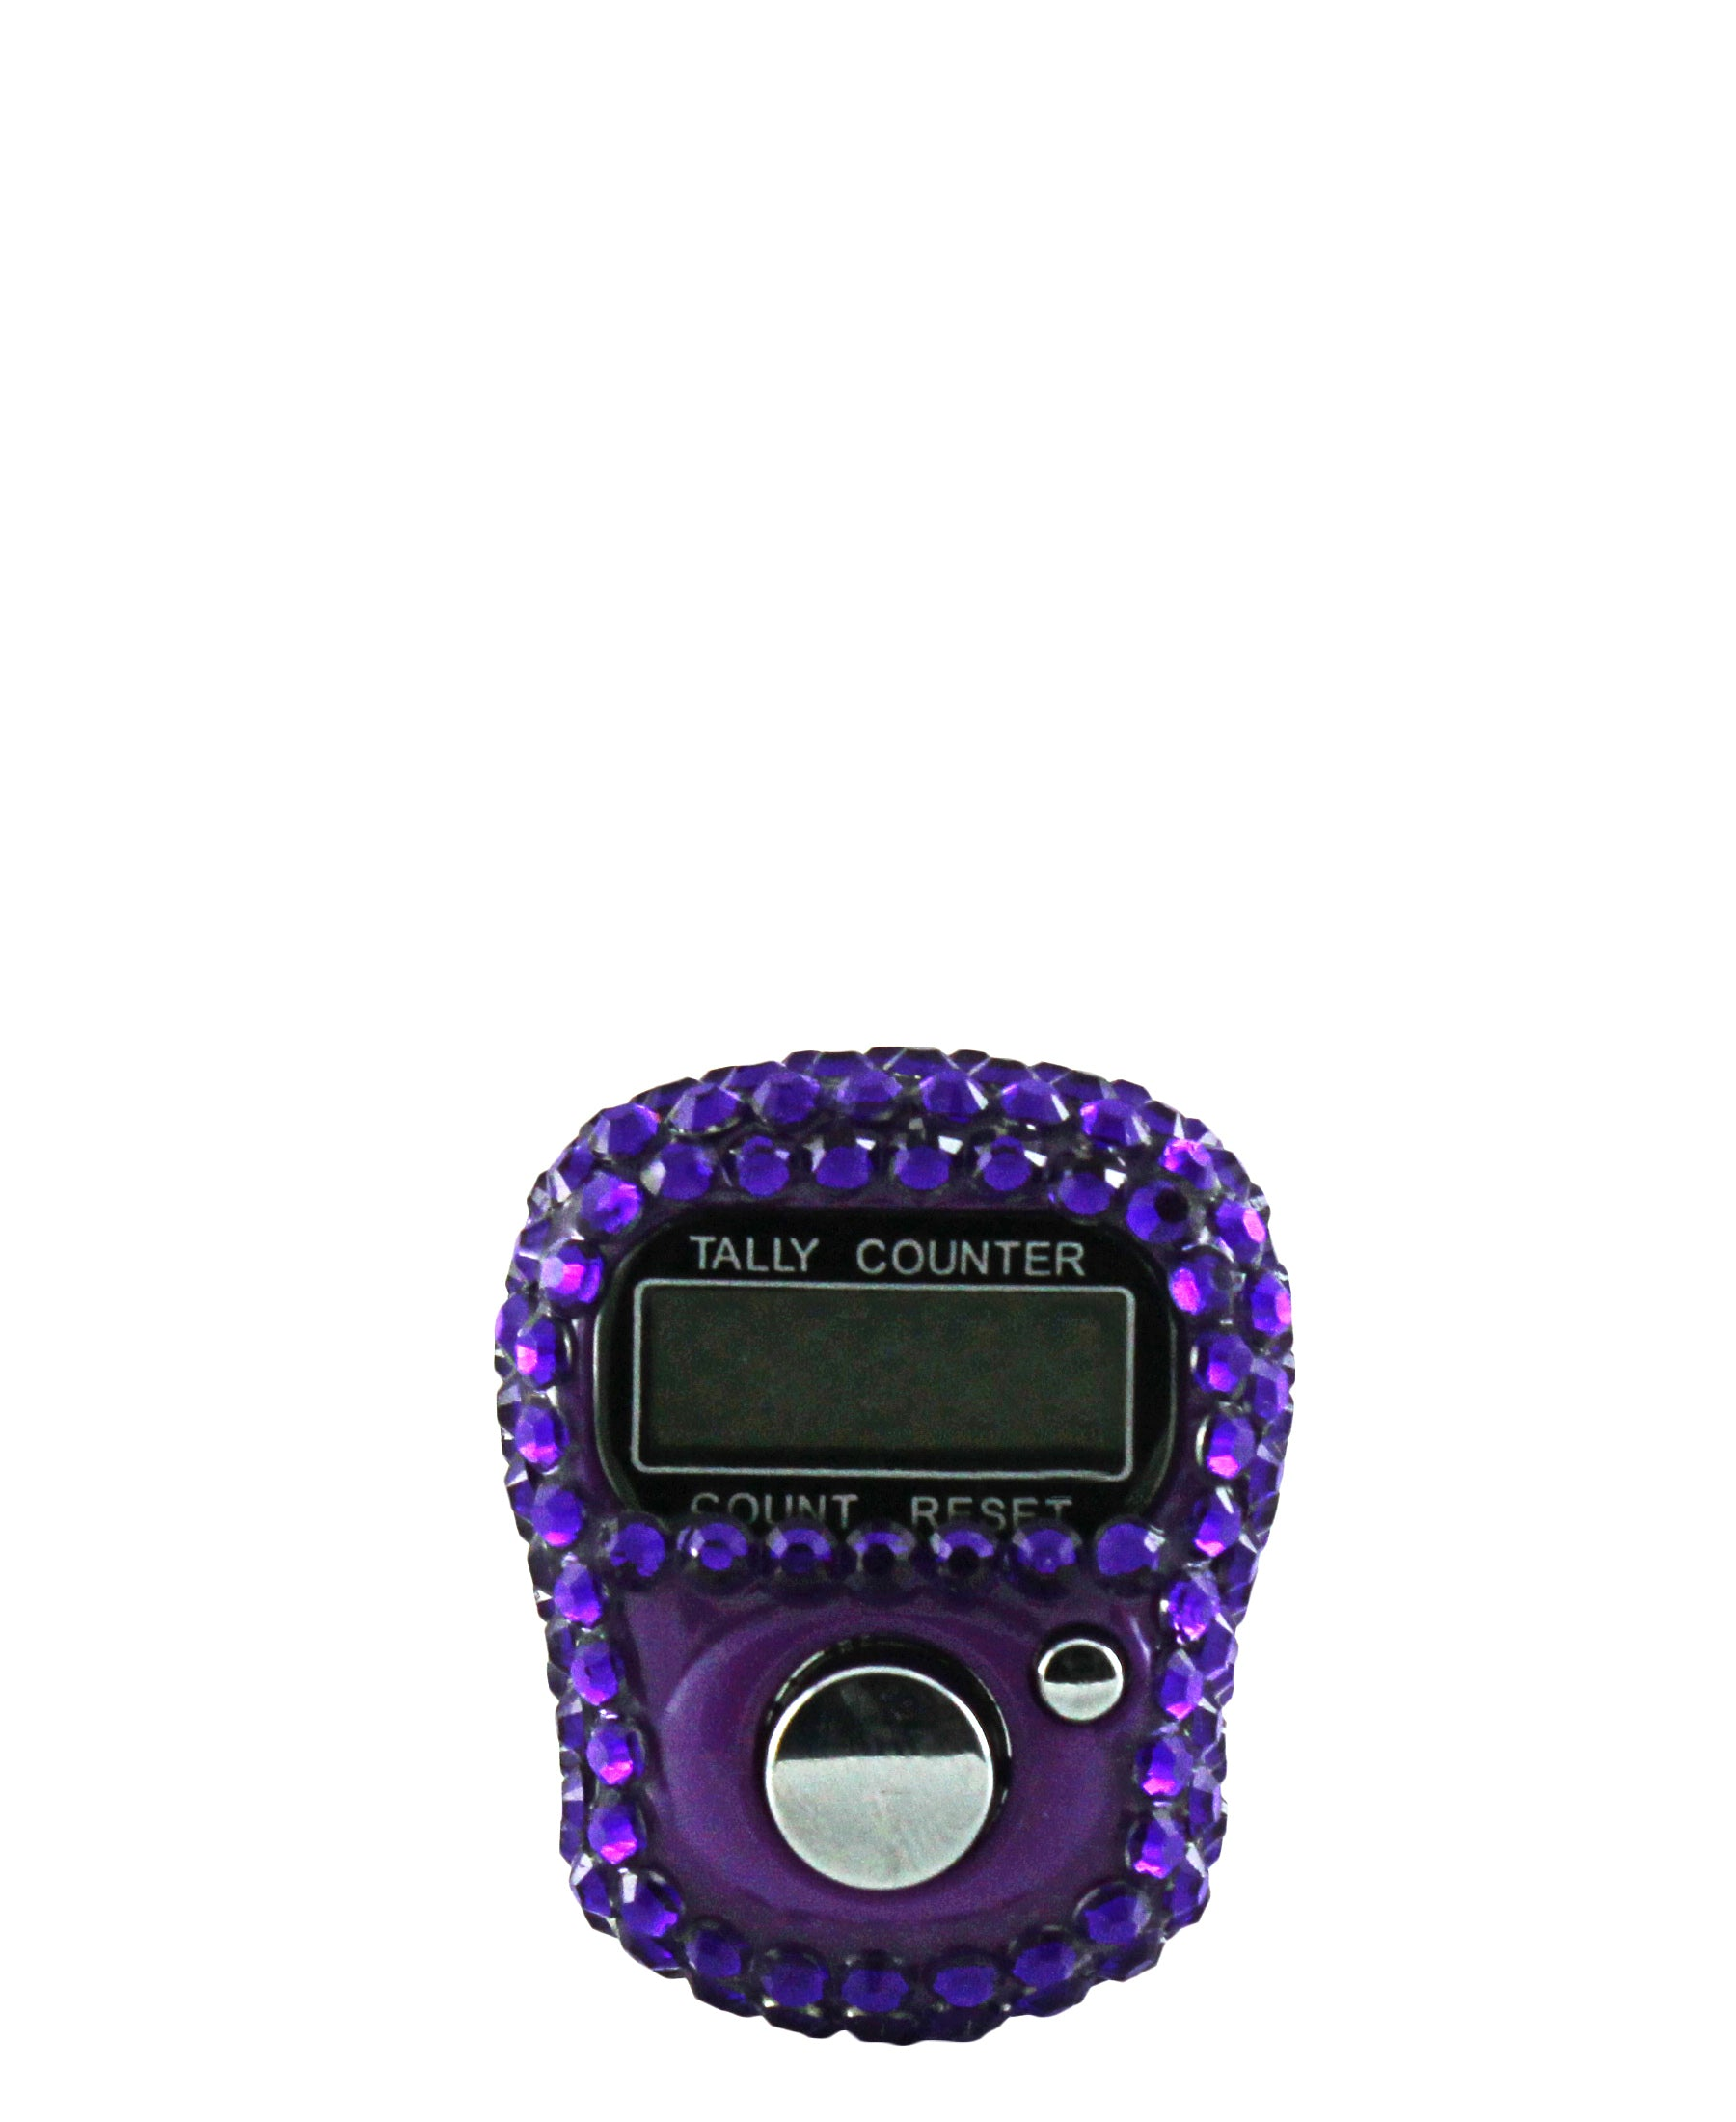 Tally Counter - Purple